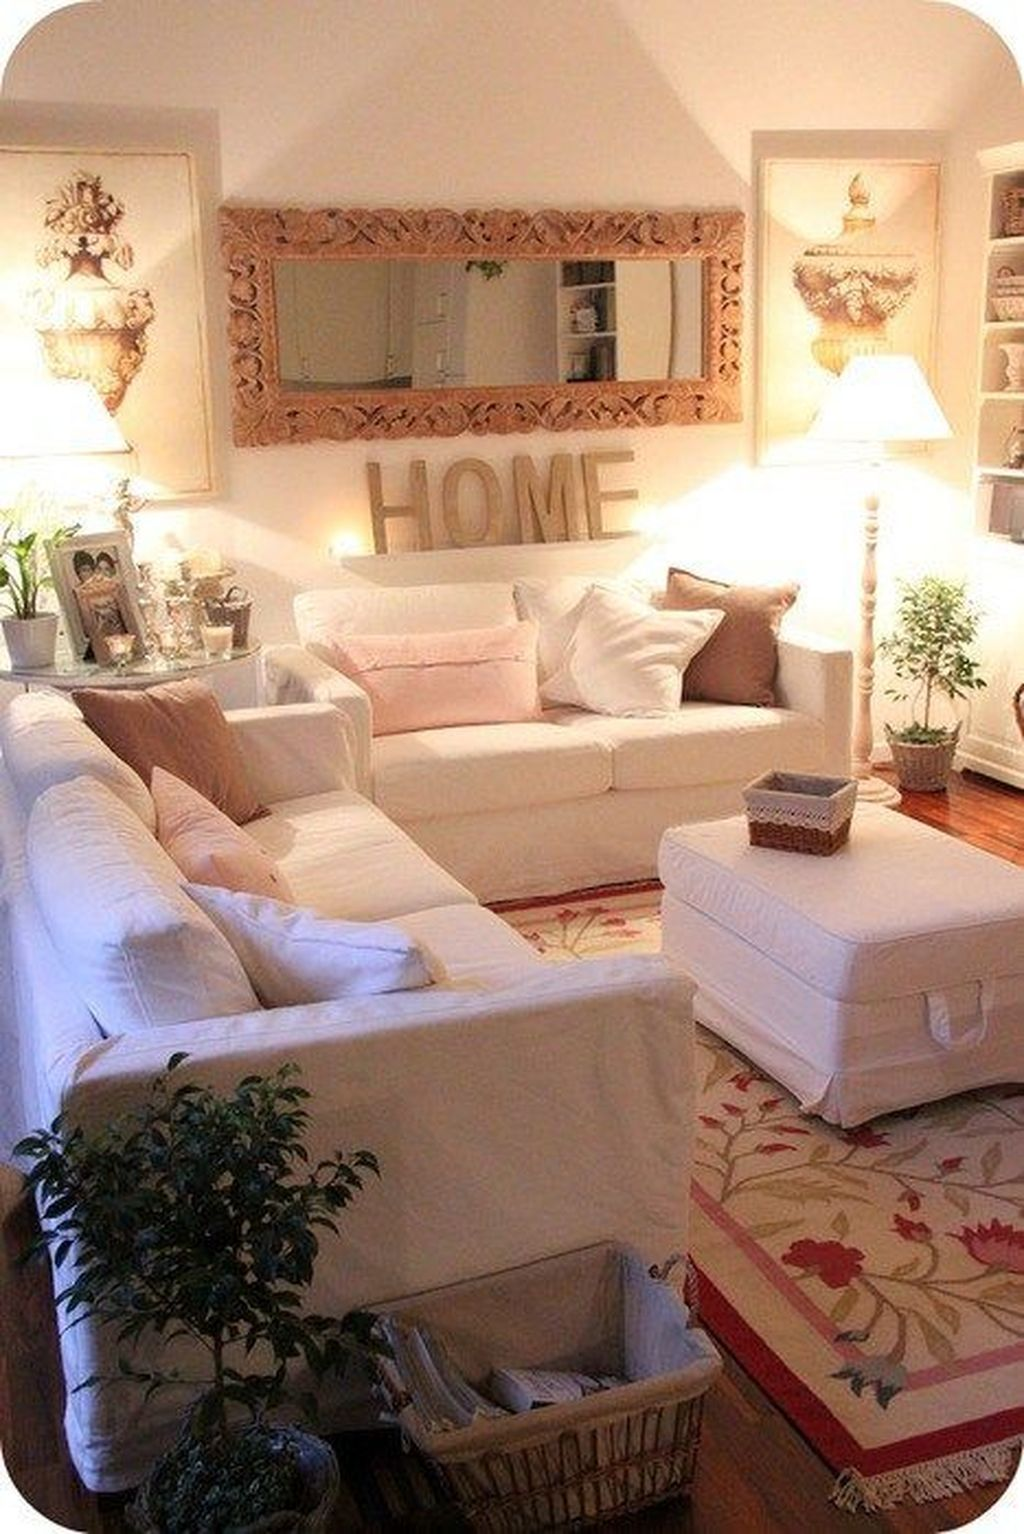 Decorating ideas for living rooms on a budget  cozy winter living room decoration ideas  winter living room